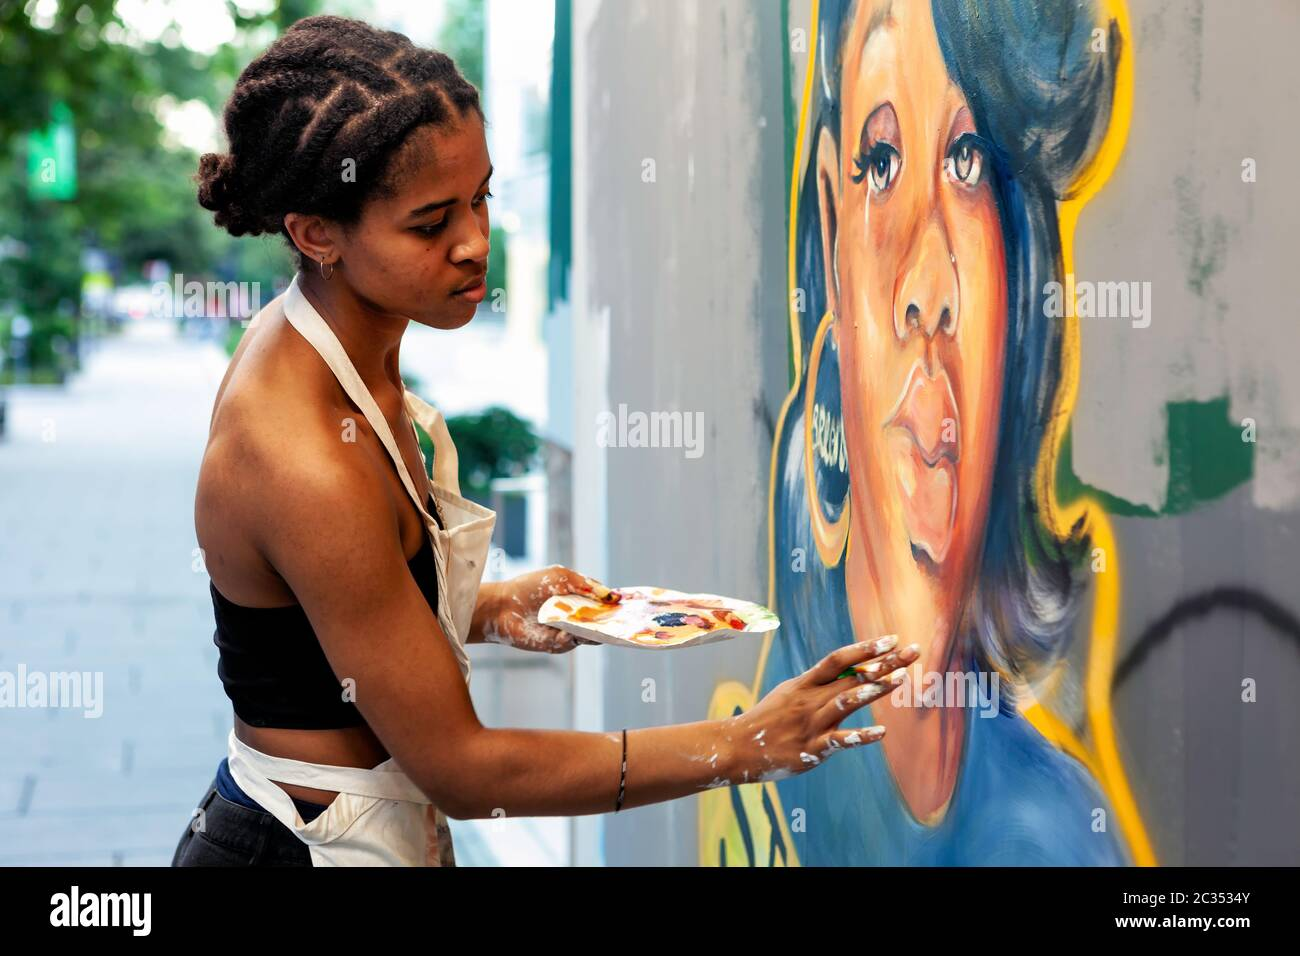 Artist Yetunde Sapp Paints A Portrait Of Breonna Taylor On Plywood Window Covering At Black Lives Matter Plaza Washington Dc United States Stock Photo Alamy